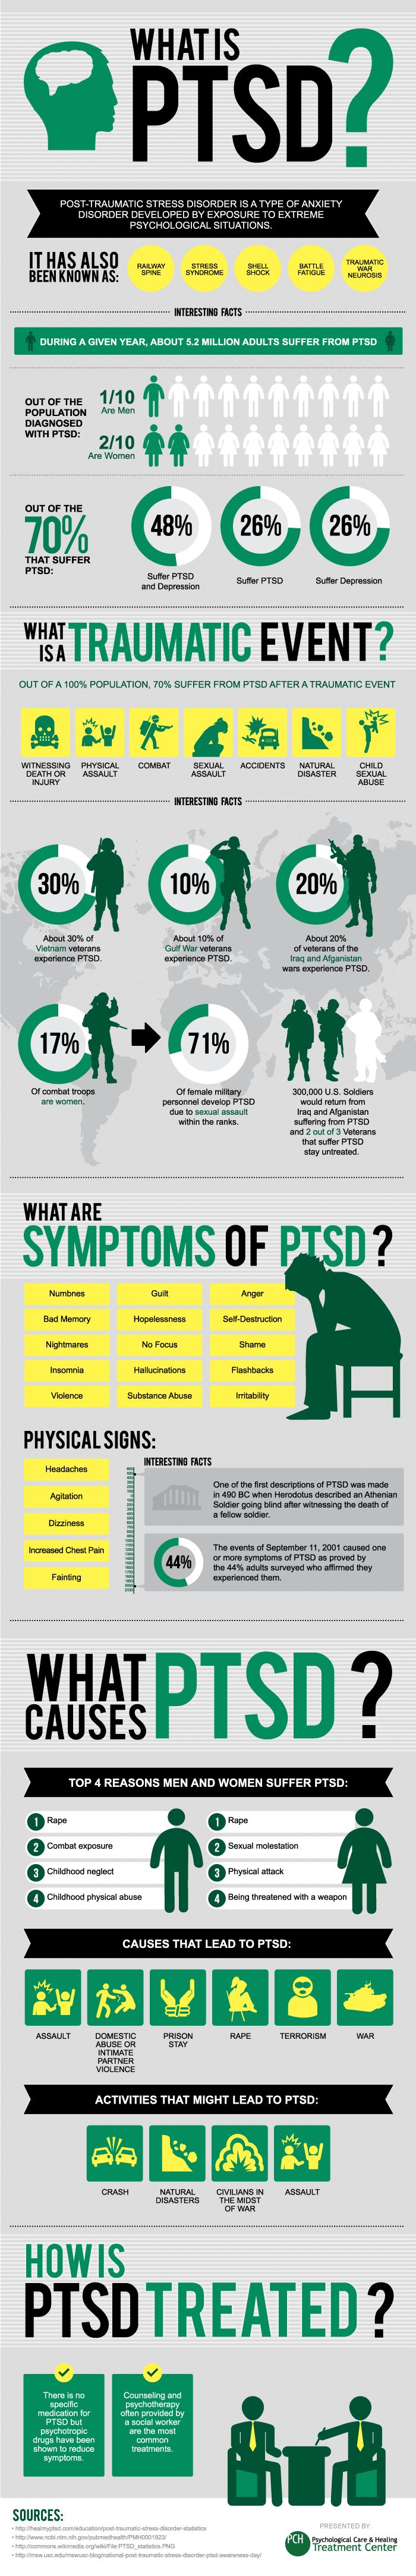 Let's Talk About Post-Traumatic Stress Disorder And Why It's More Common Than You Might Think